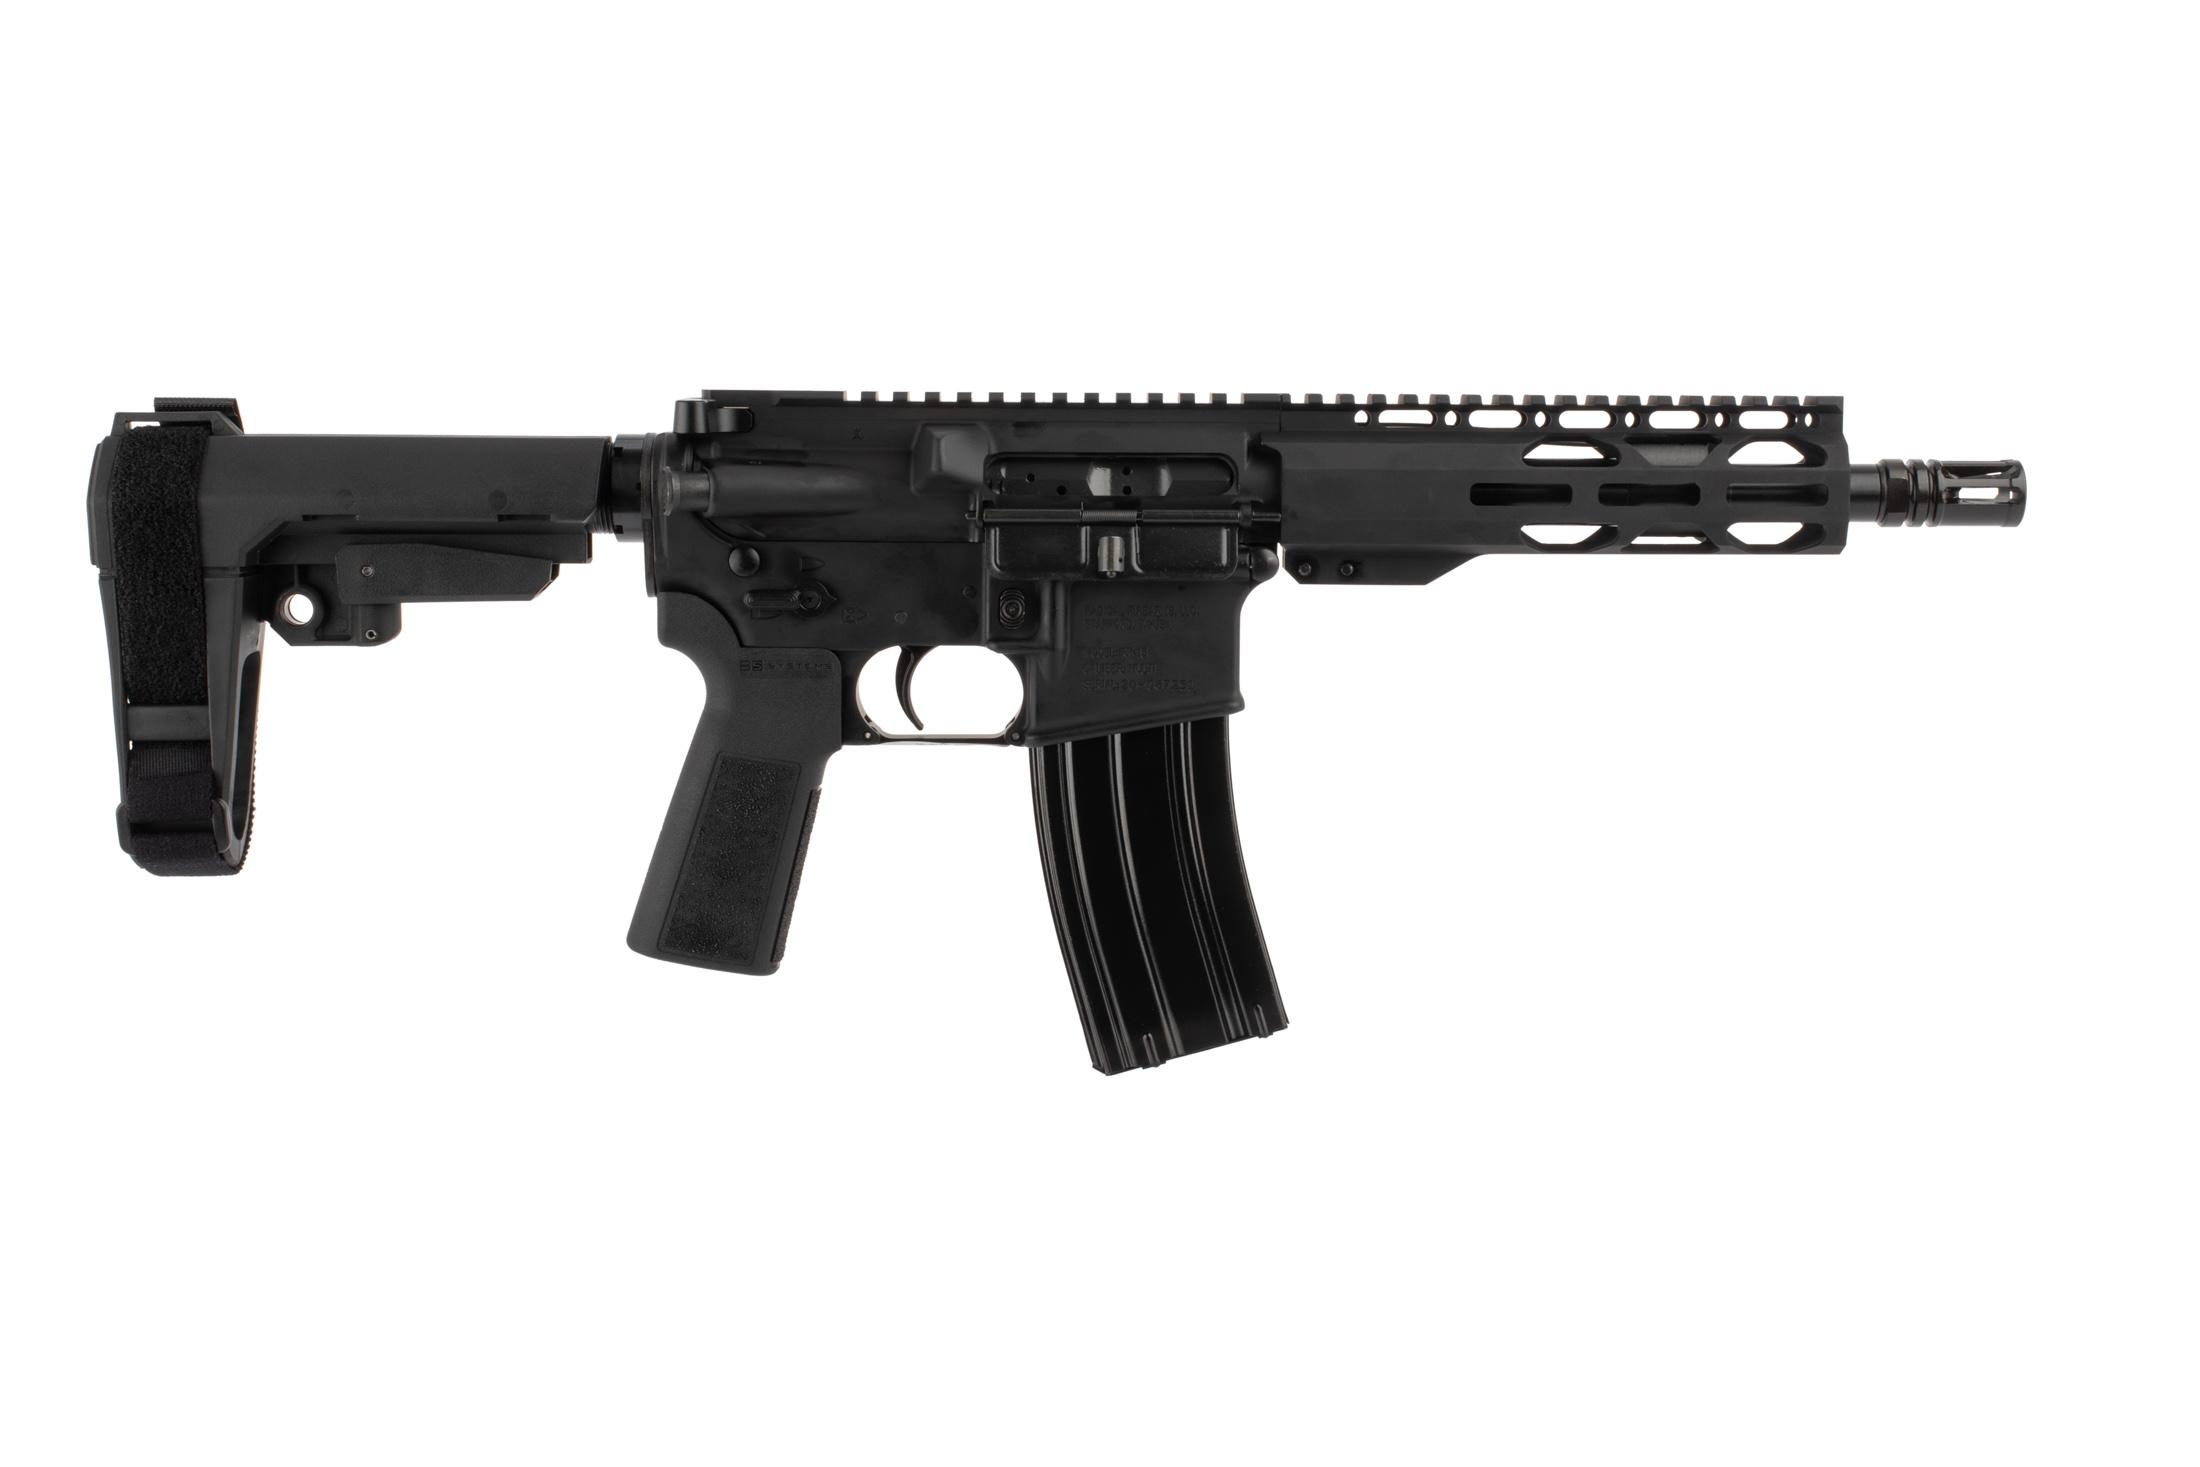 The Radical Firearms 300 blk pistol features an 8.5 inch barrel and RPR M-LOK handguard